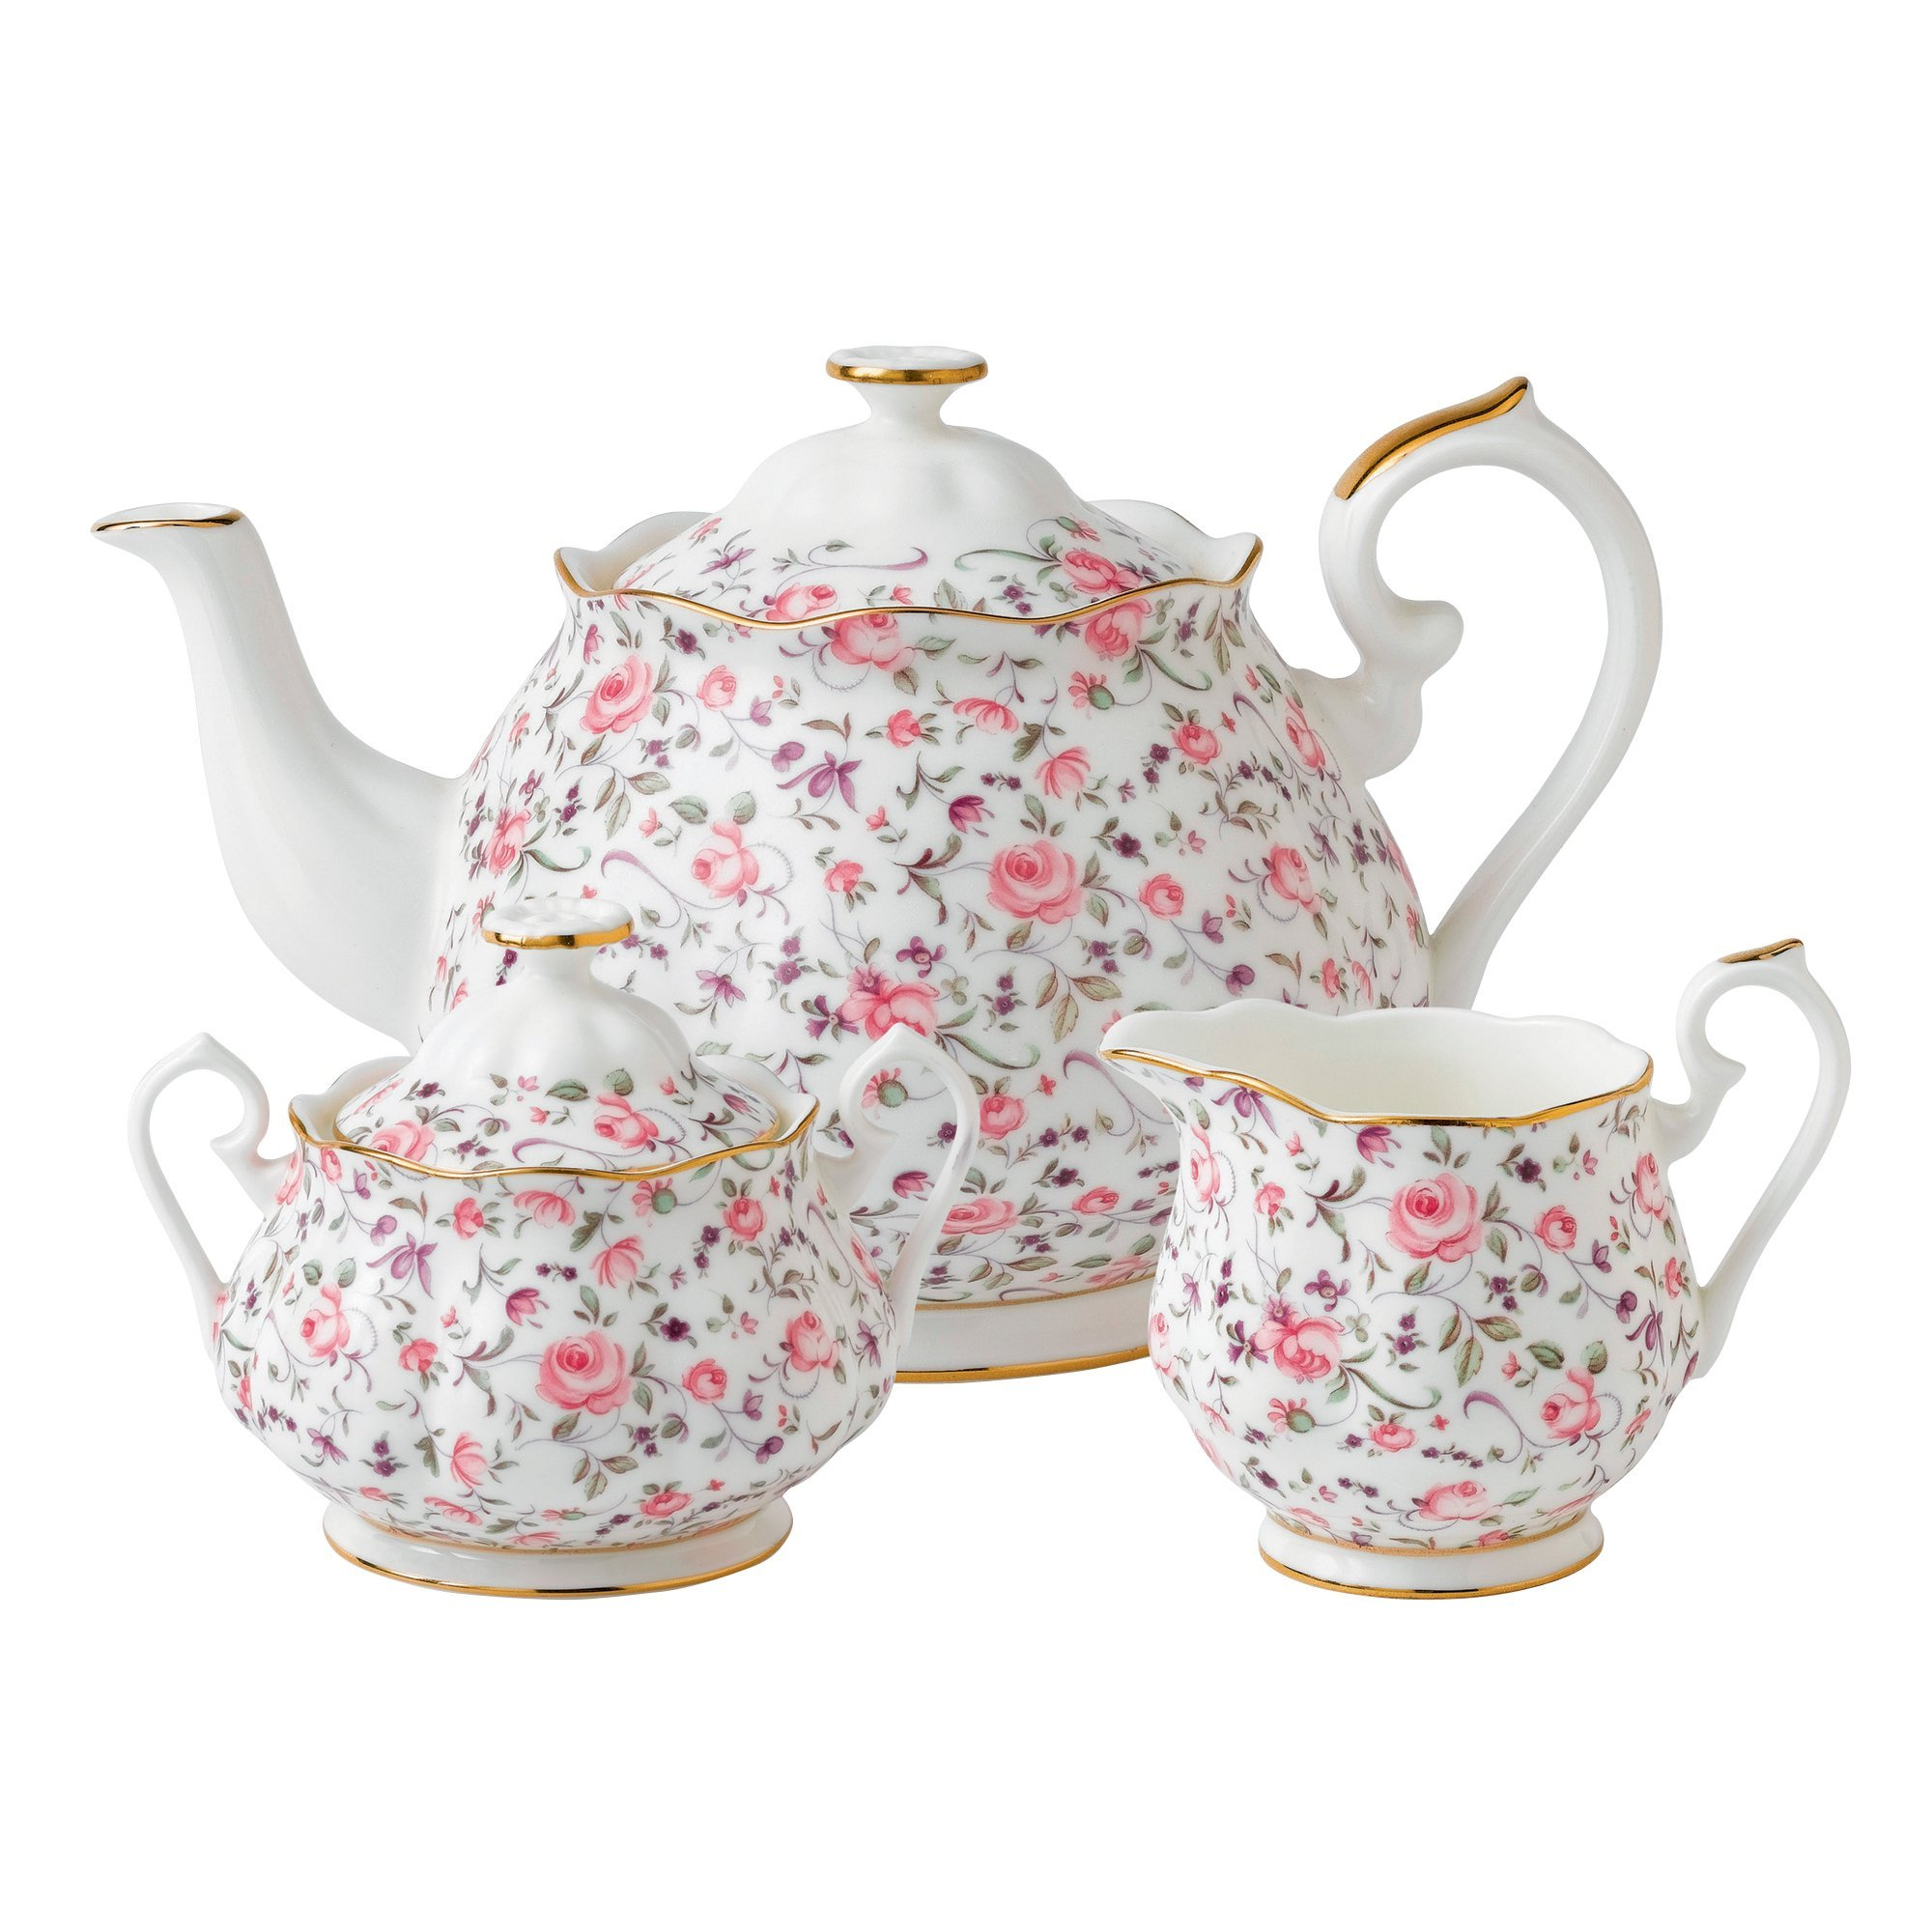 Royal Albert 8704025823 New Country Roses Rose Confetti Teaset, 3-Piece by Royal Albert